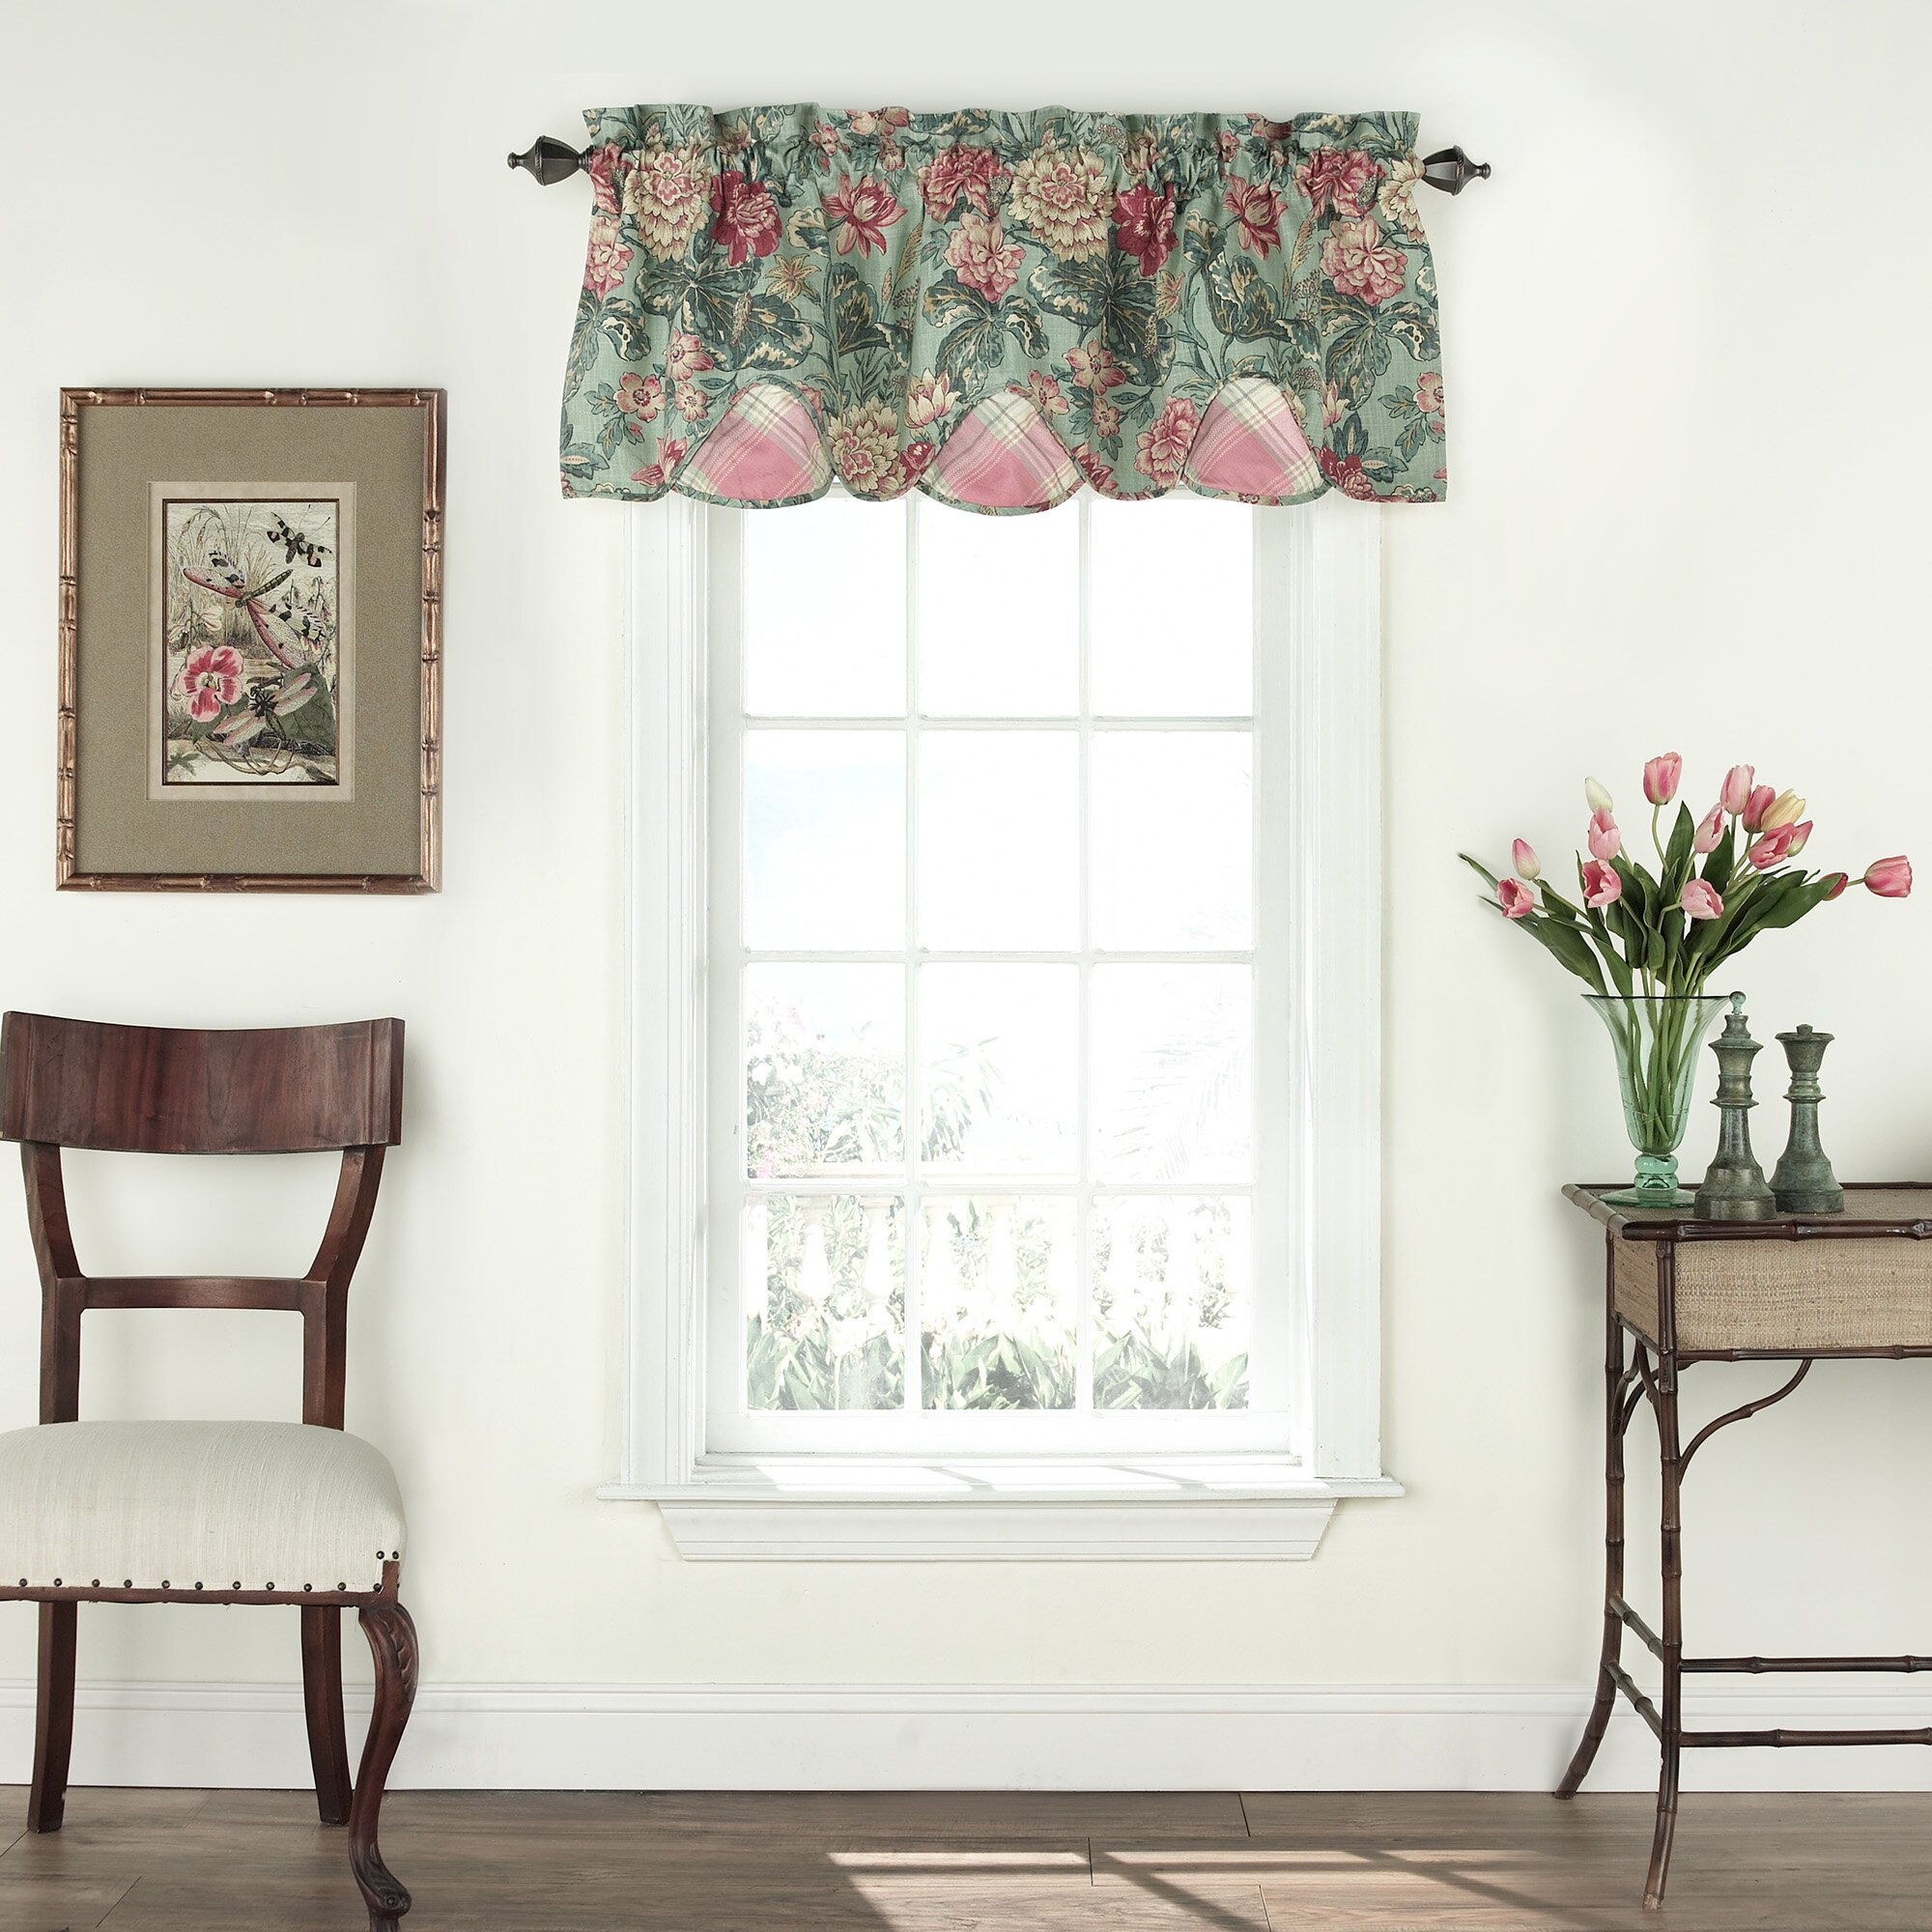 Waverly Sonnet Sublime Scalloped Floral Valance & Reviews